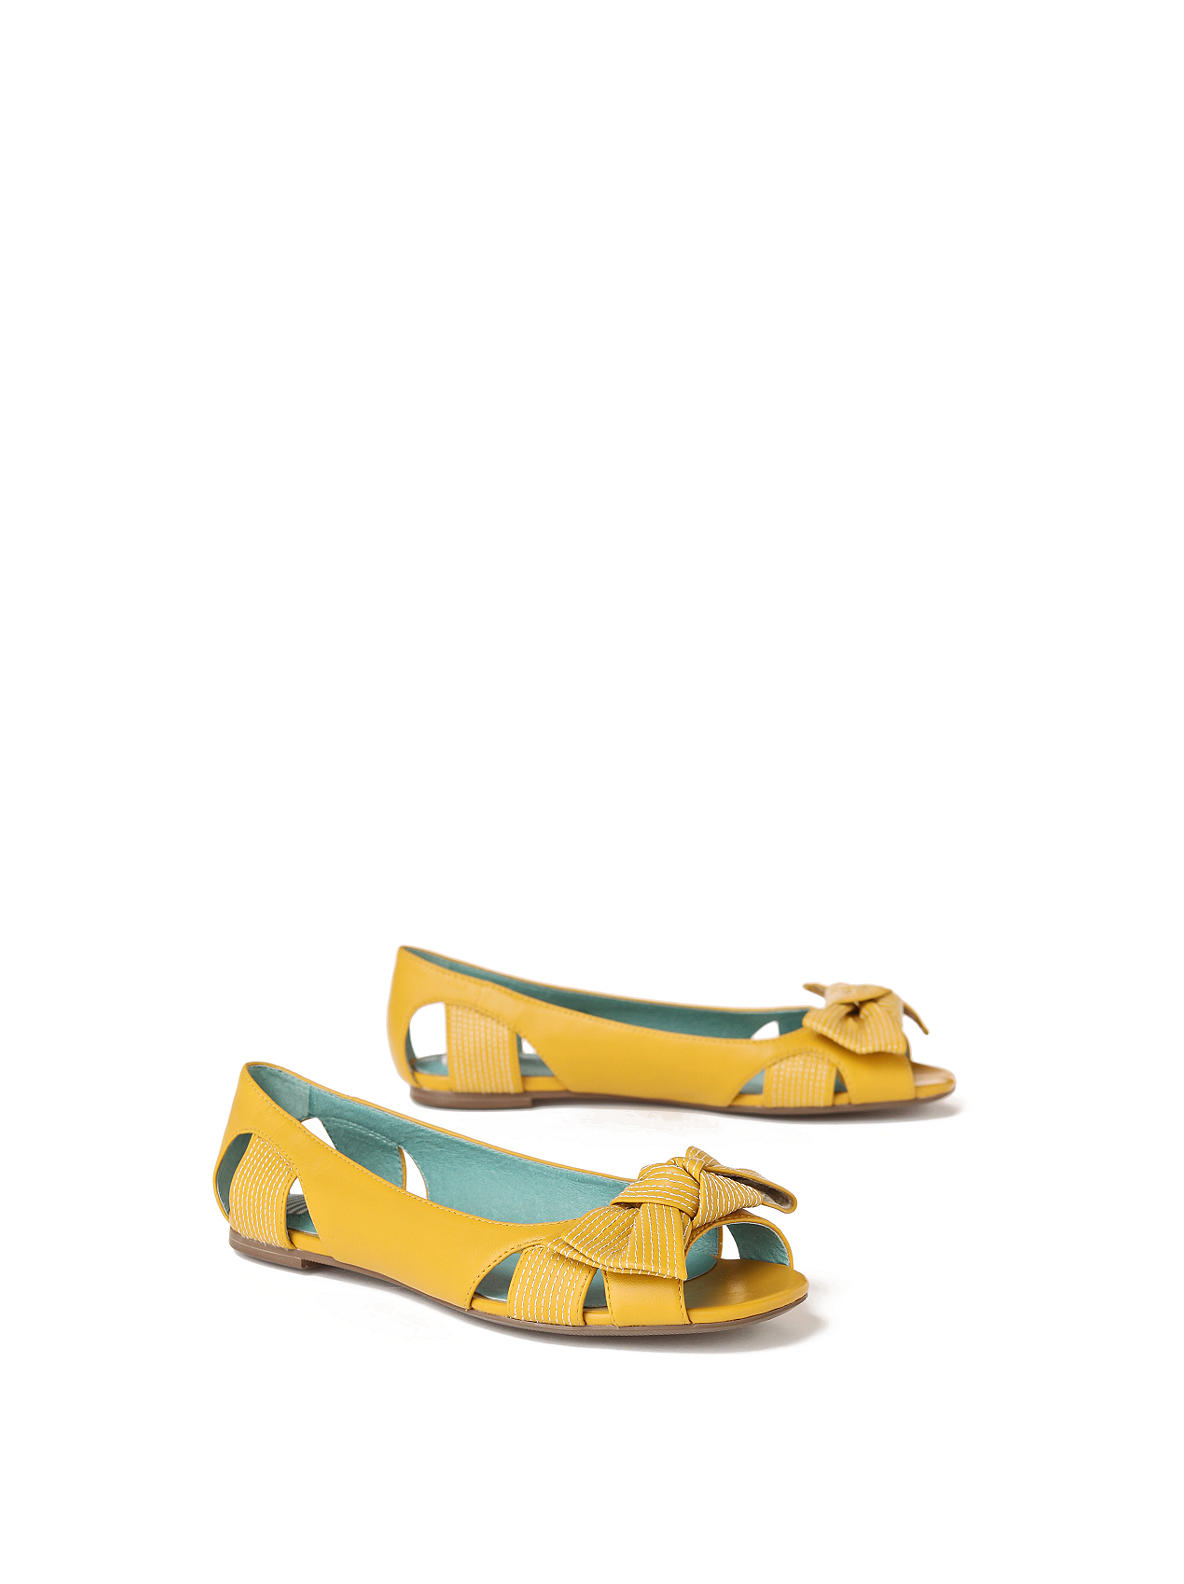 For You Flats - Anthropologie.com